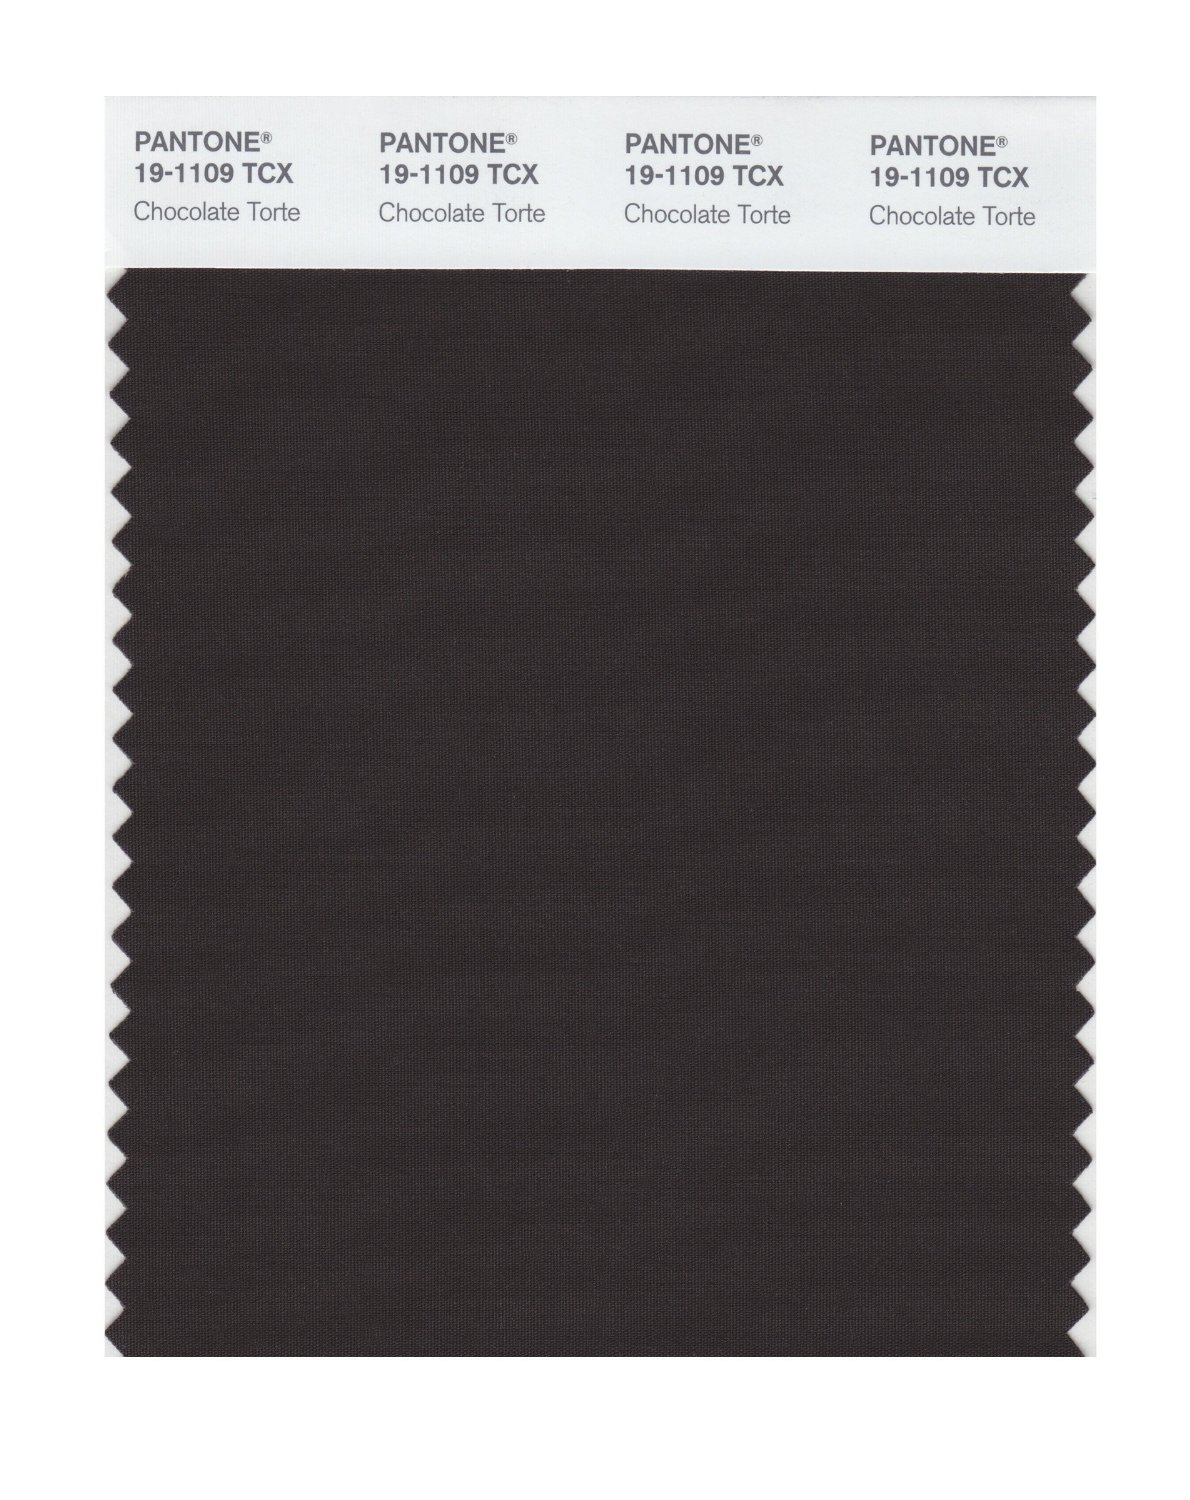 Pantone Smart Swatch 19-1109 Chocolate Torte